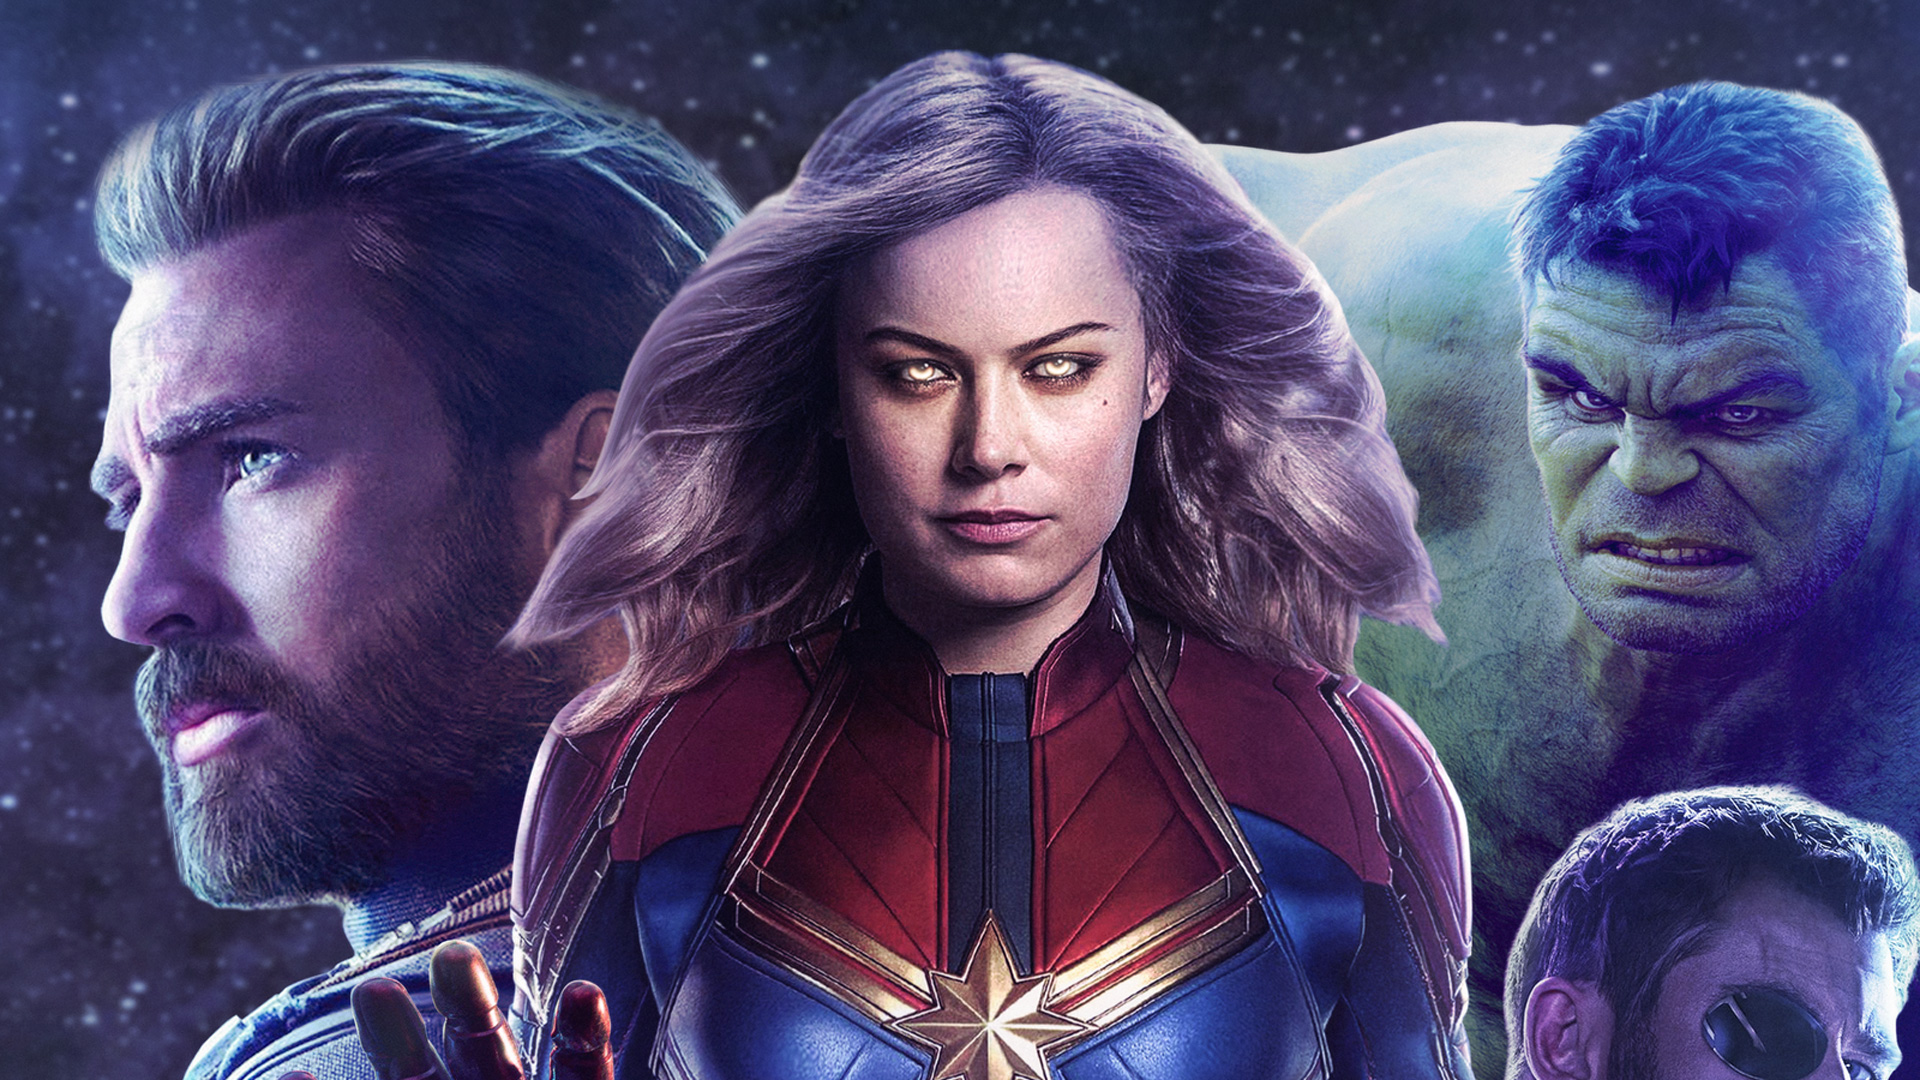 Avengers End Game 2019 Hd Movies 4k Wallpapers Images